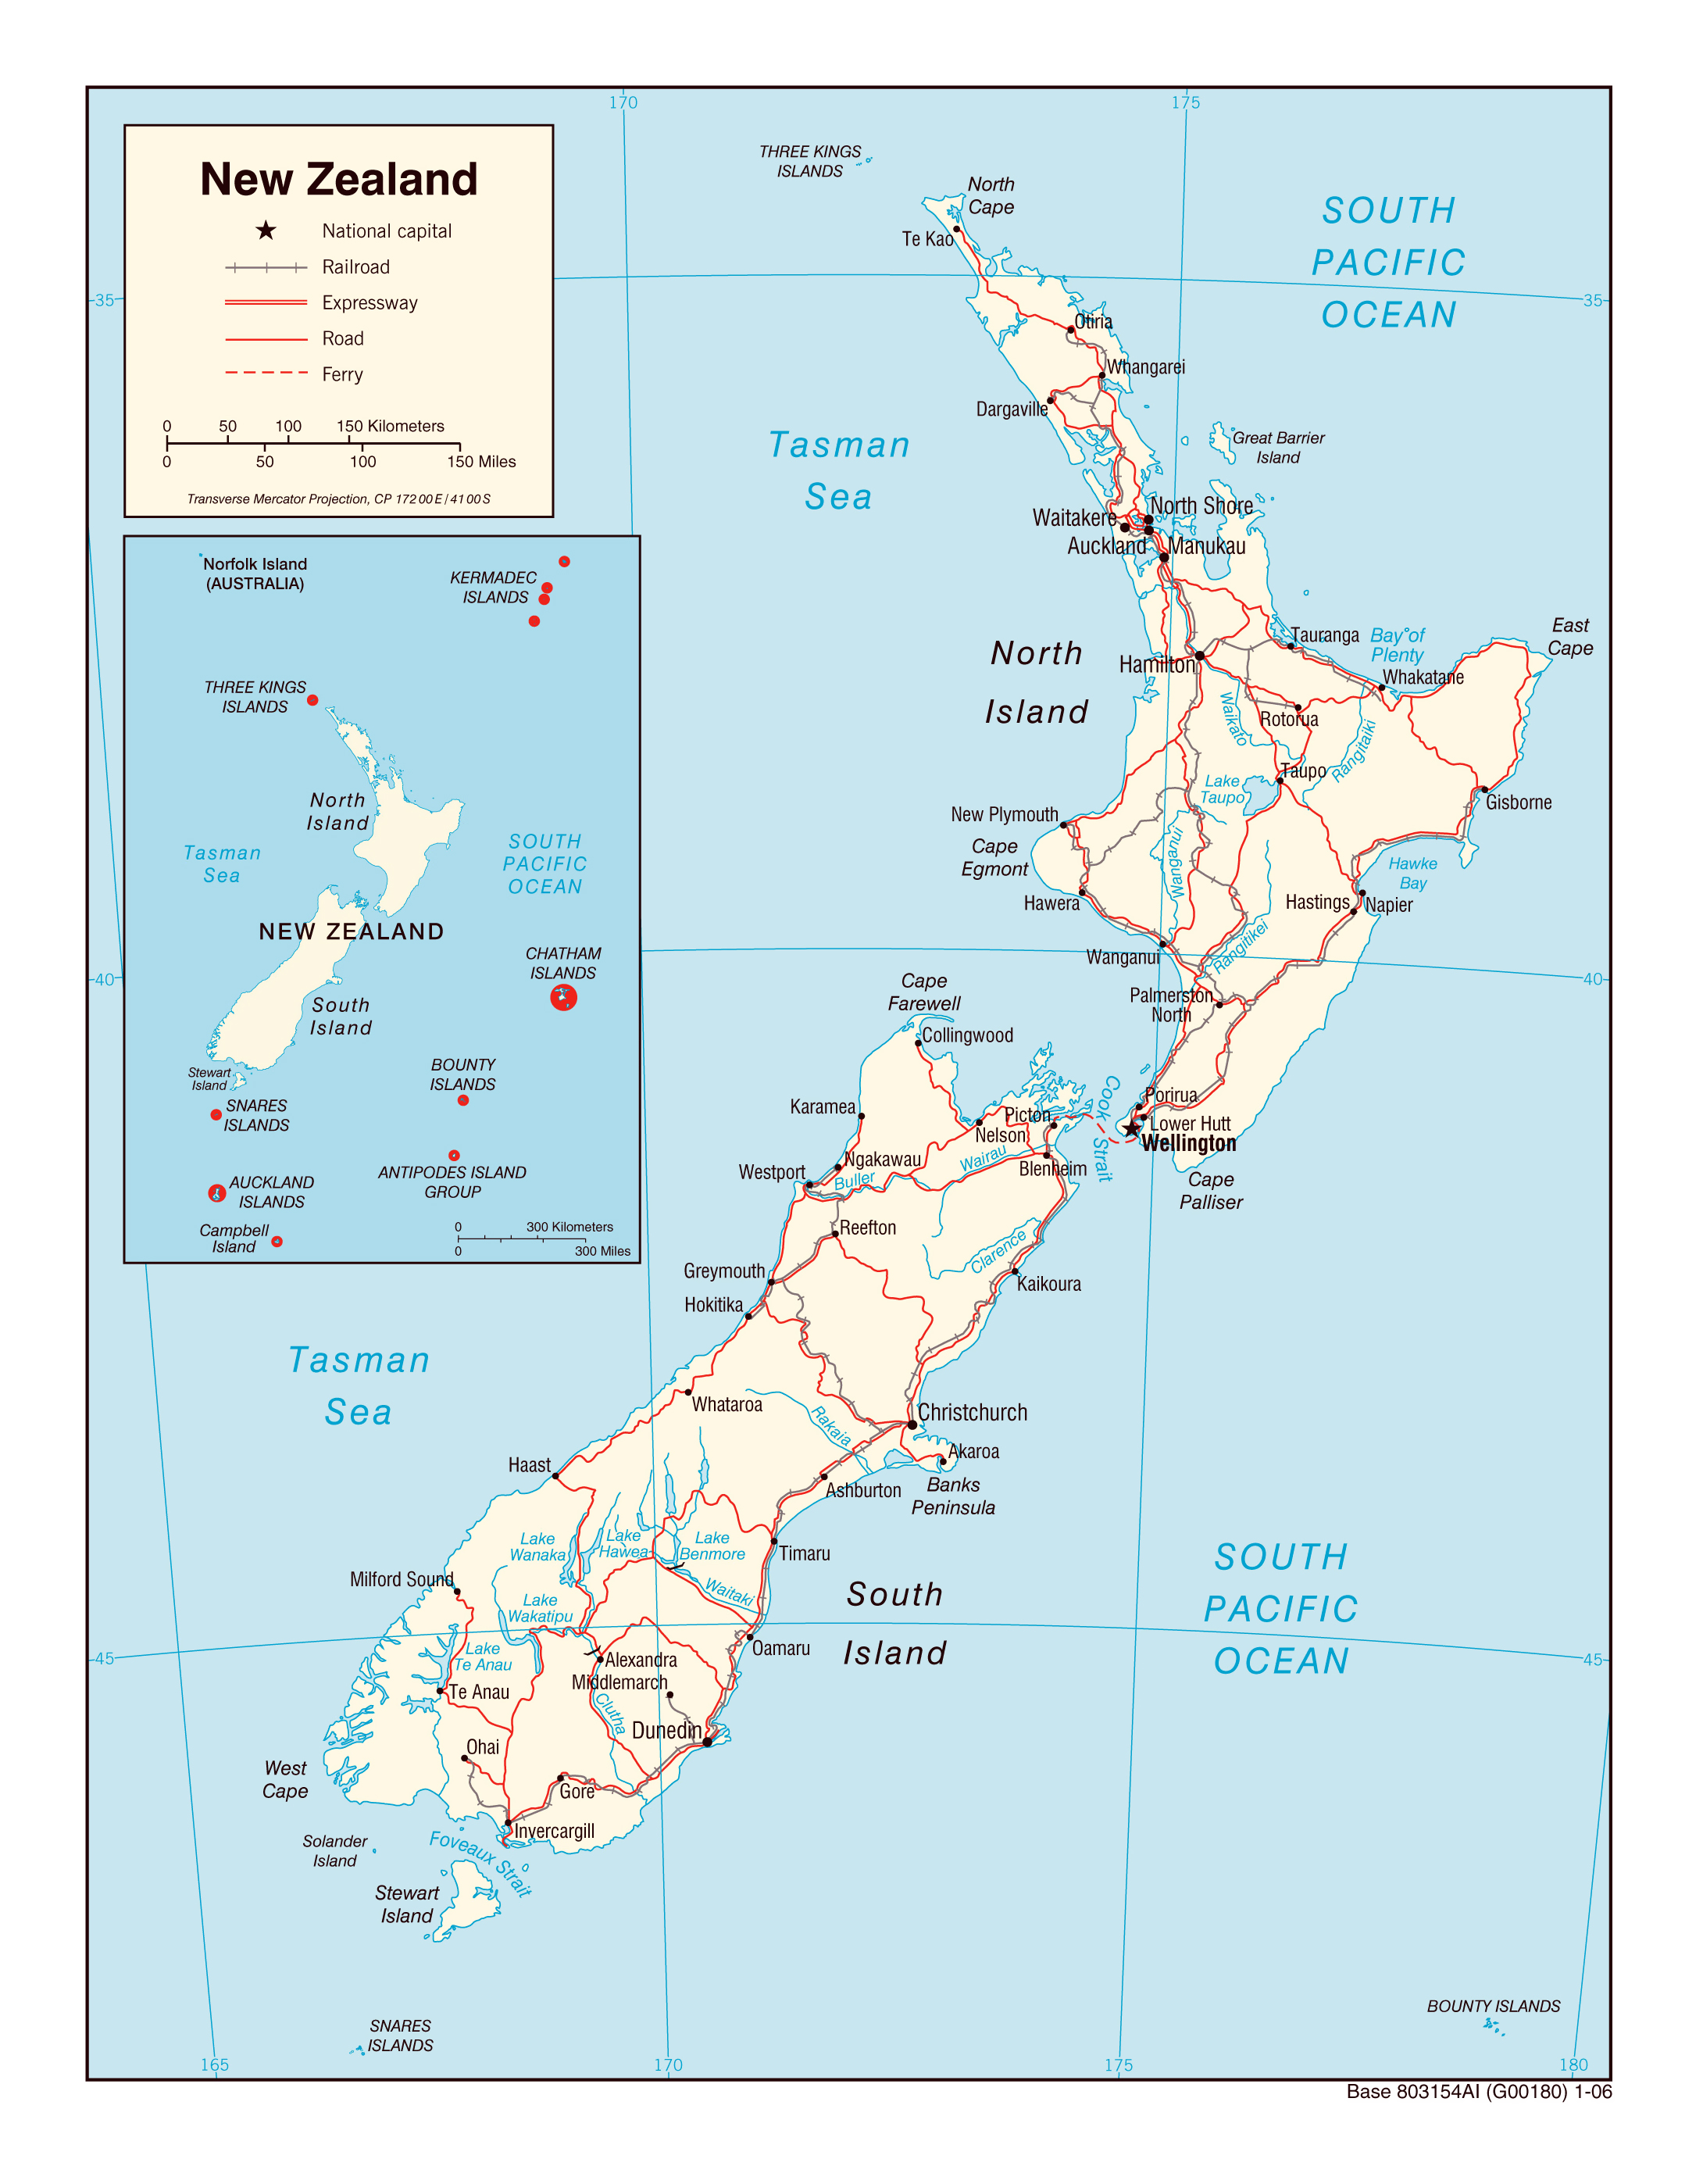 Political Map Of New Zealand.Large Political Map Of New Zealand With Roads Railroads And Cities